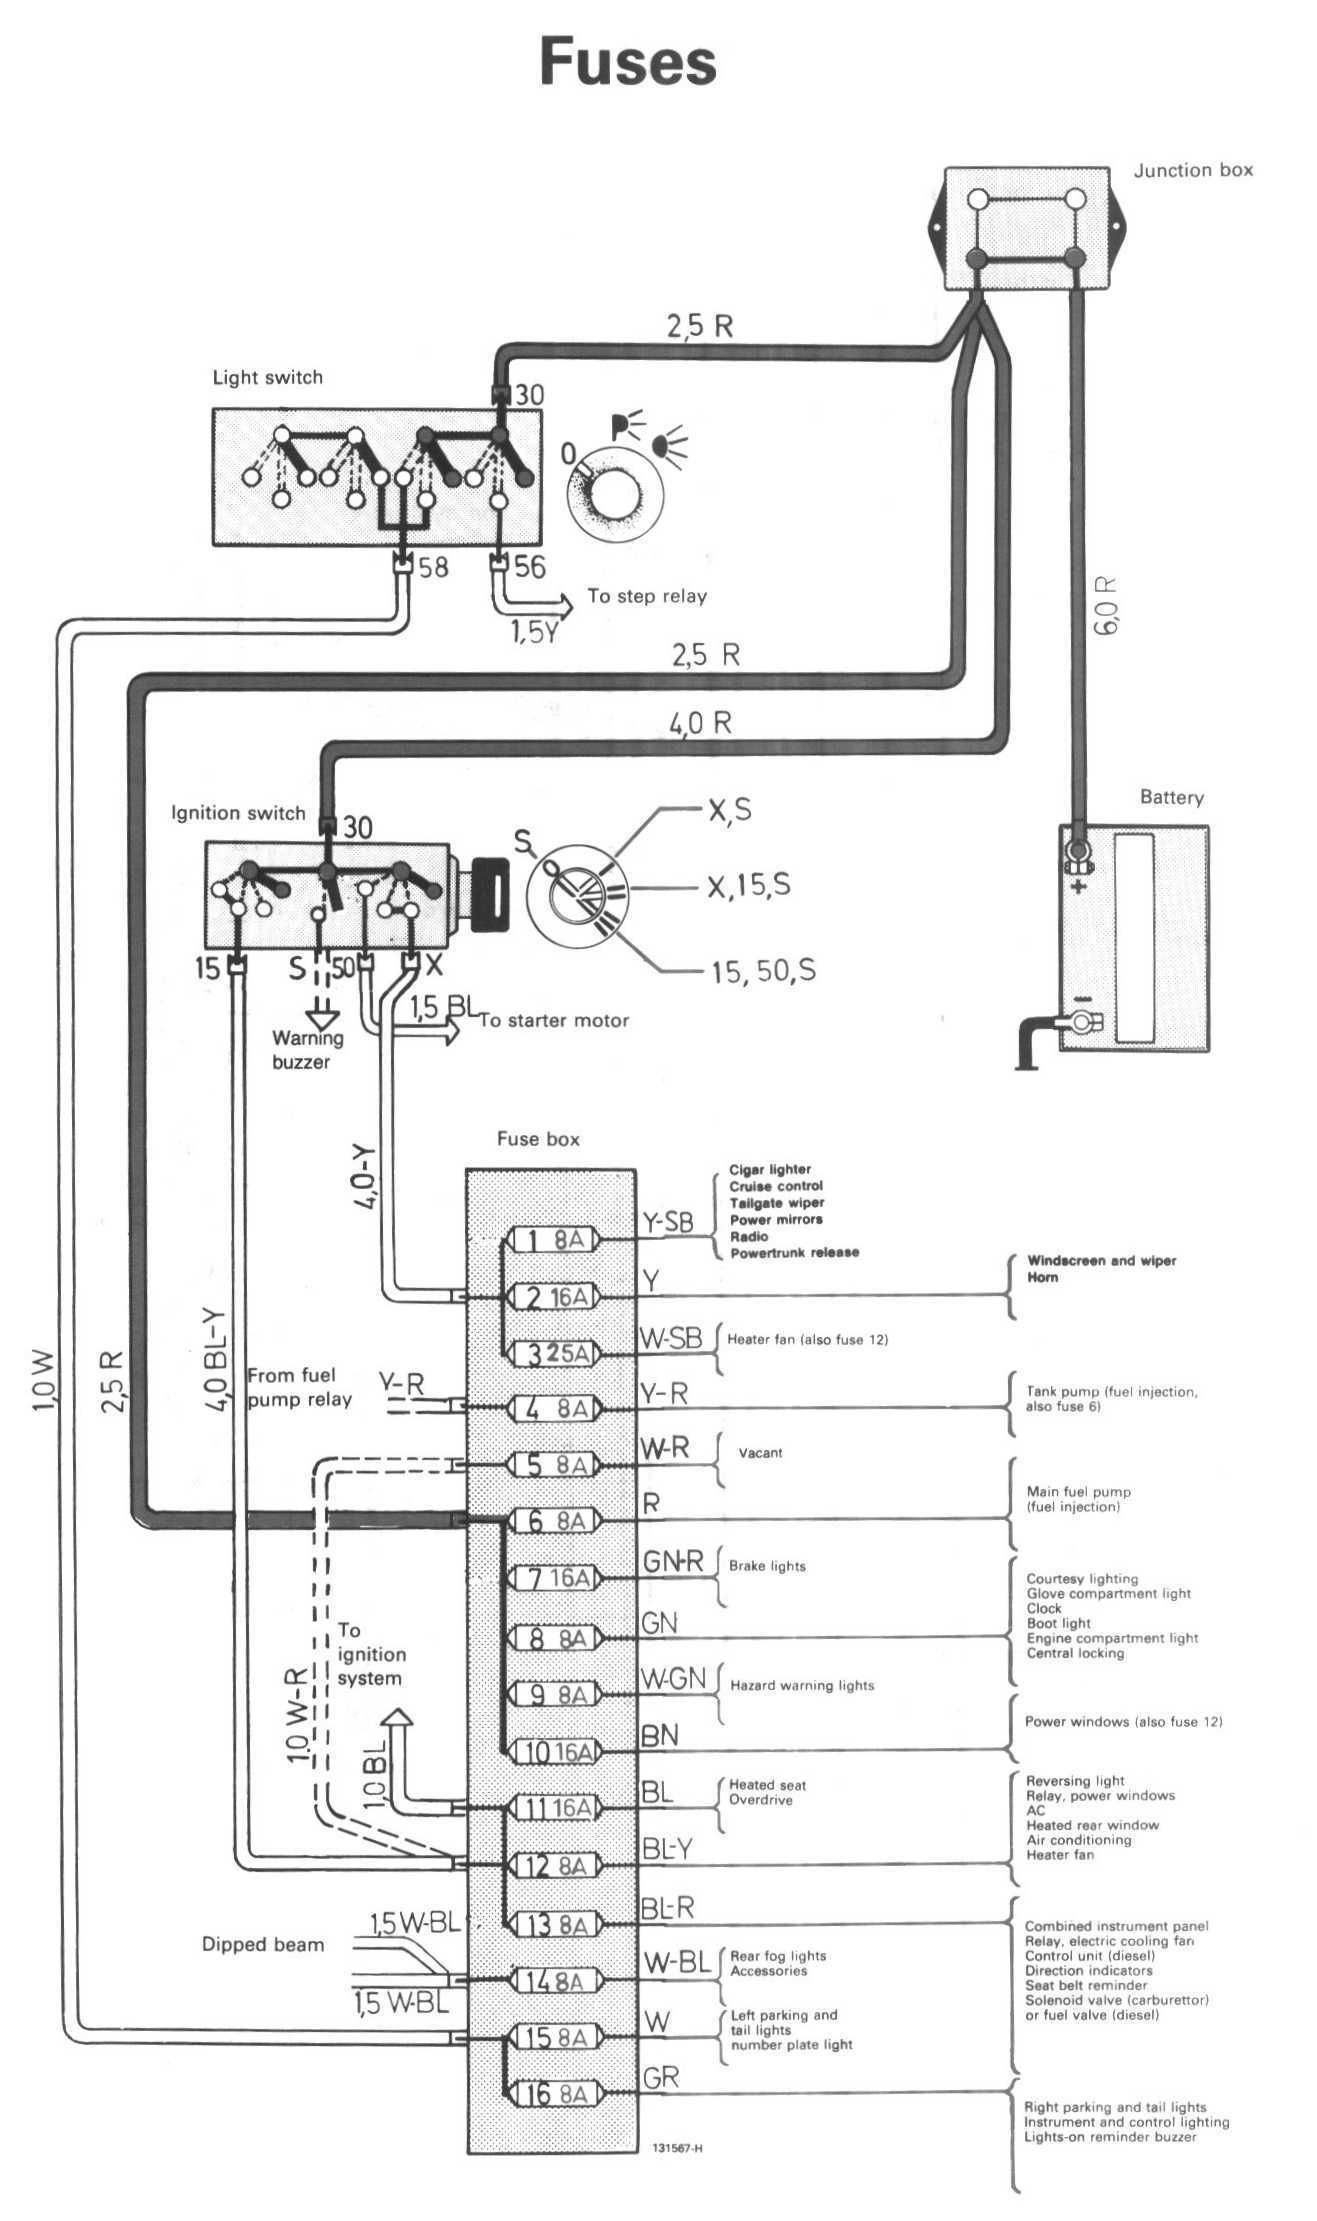 Volvo 740 Fuse Box Location Library Of Wiring Diagram U2022 Rh Diagrroduct  Today 2000 S40 2001